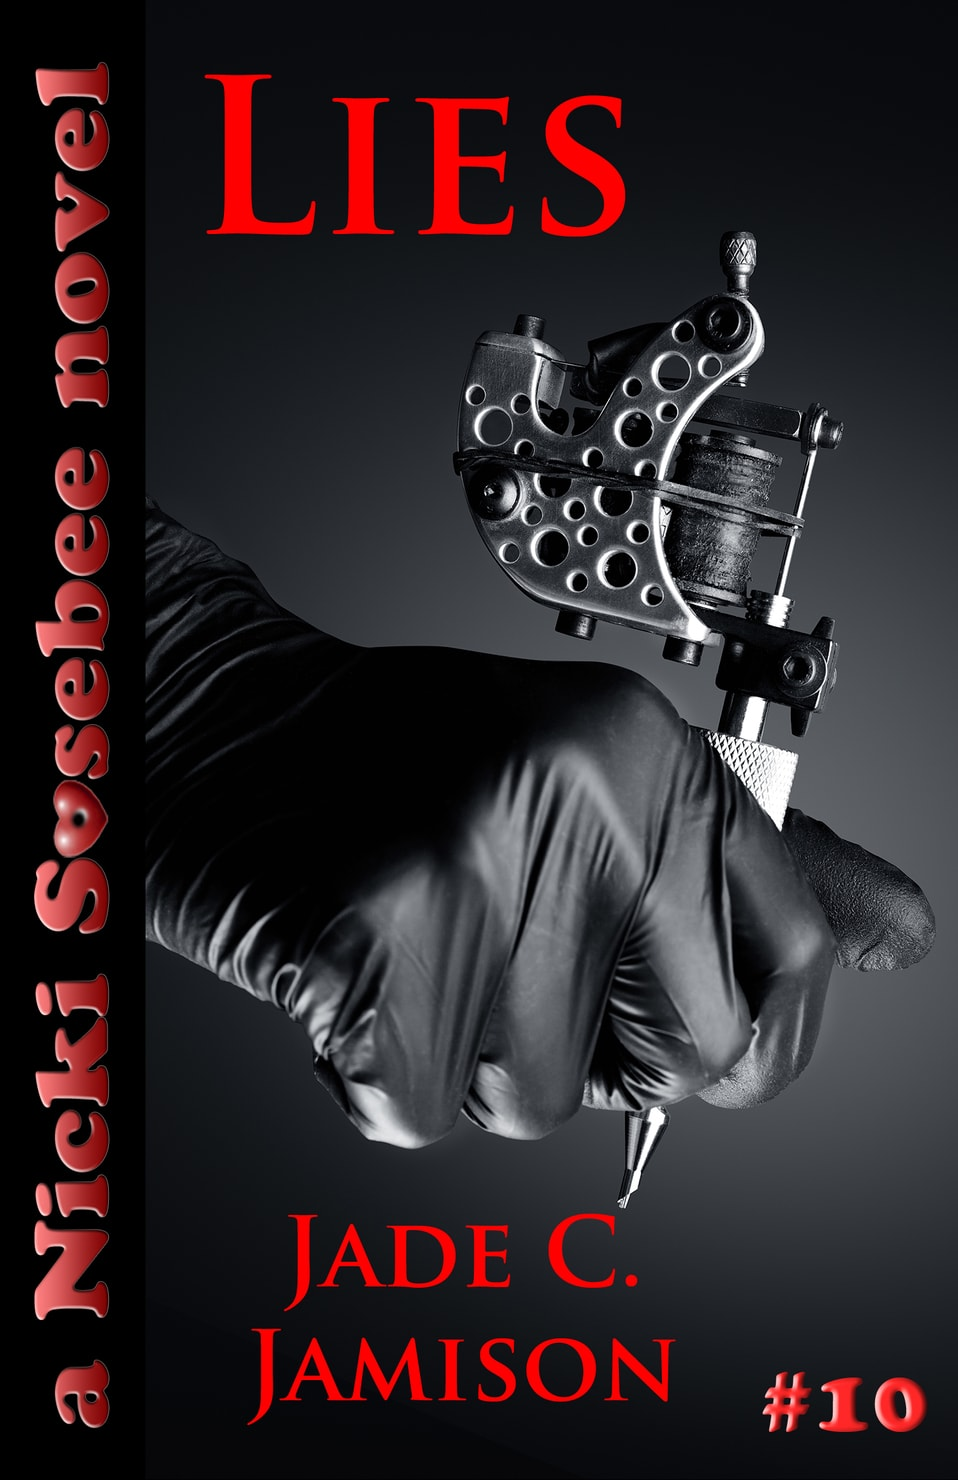 Cover Reveal for Nicki Sosebee #10:  LIES